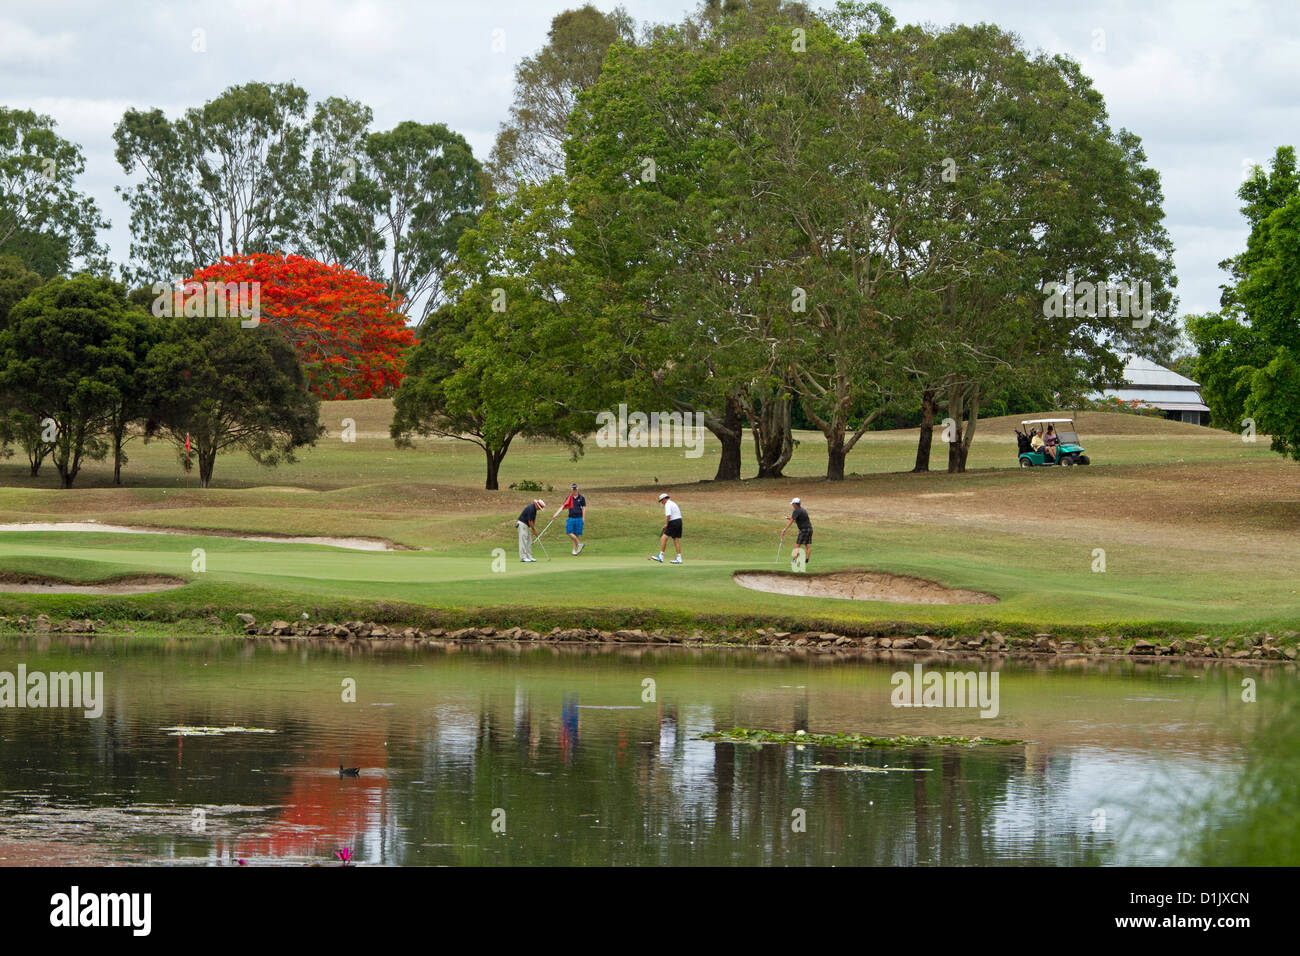 Group of golfers playing beside lake at picturesque golf course with trees and people reflected in water - Stock Image